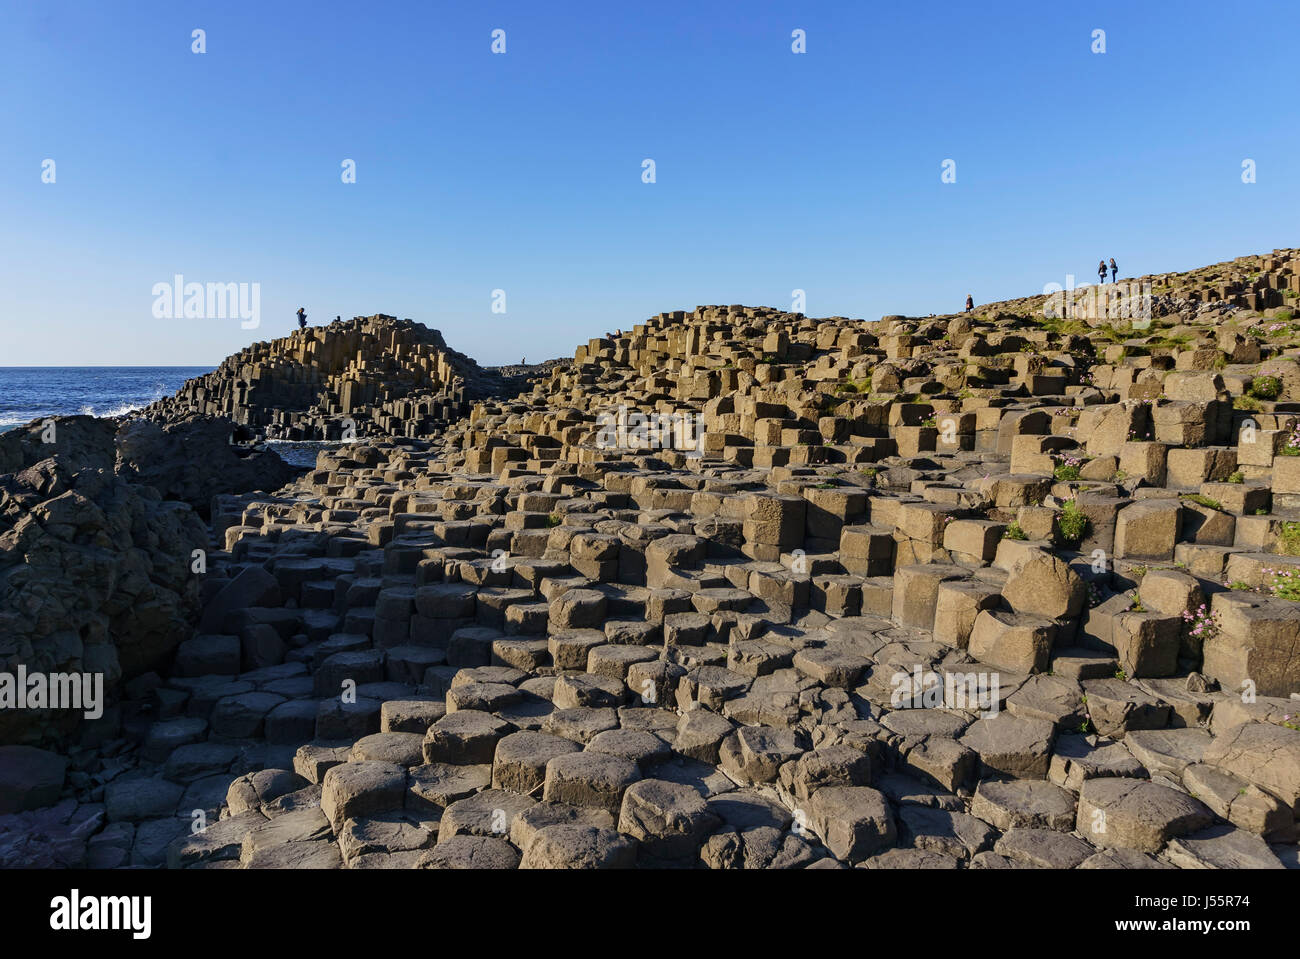 The famous ancient volcanic eruption - Giant's Causeway of County Antrim, Northern Ireland - Stock Image